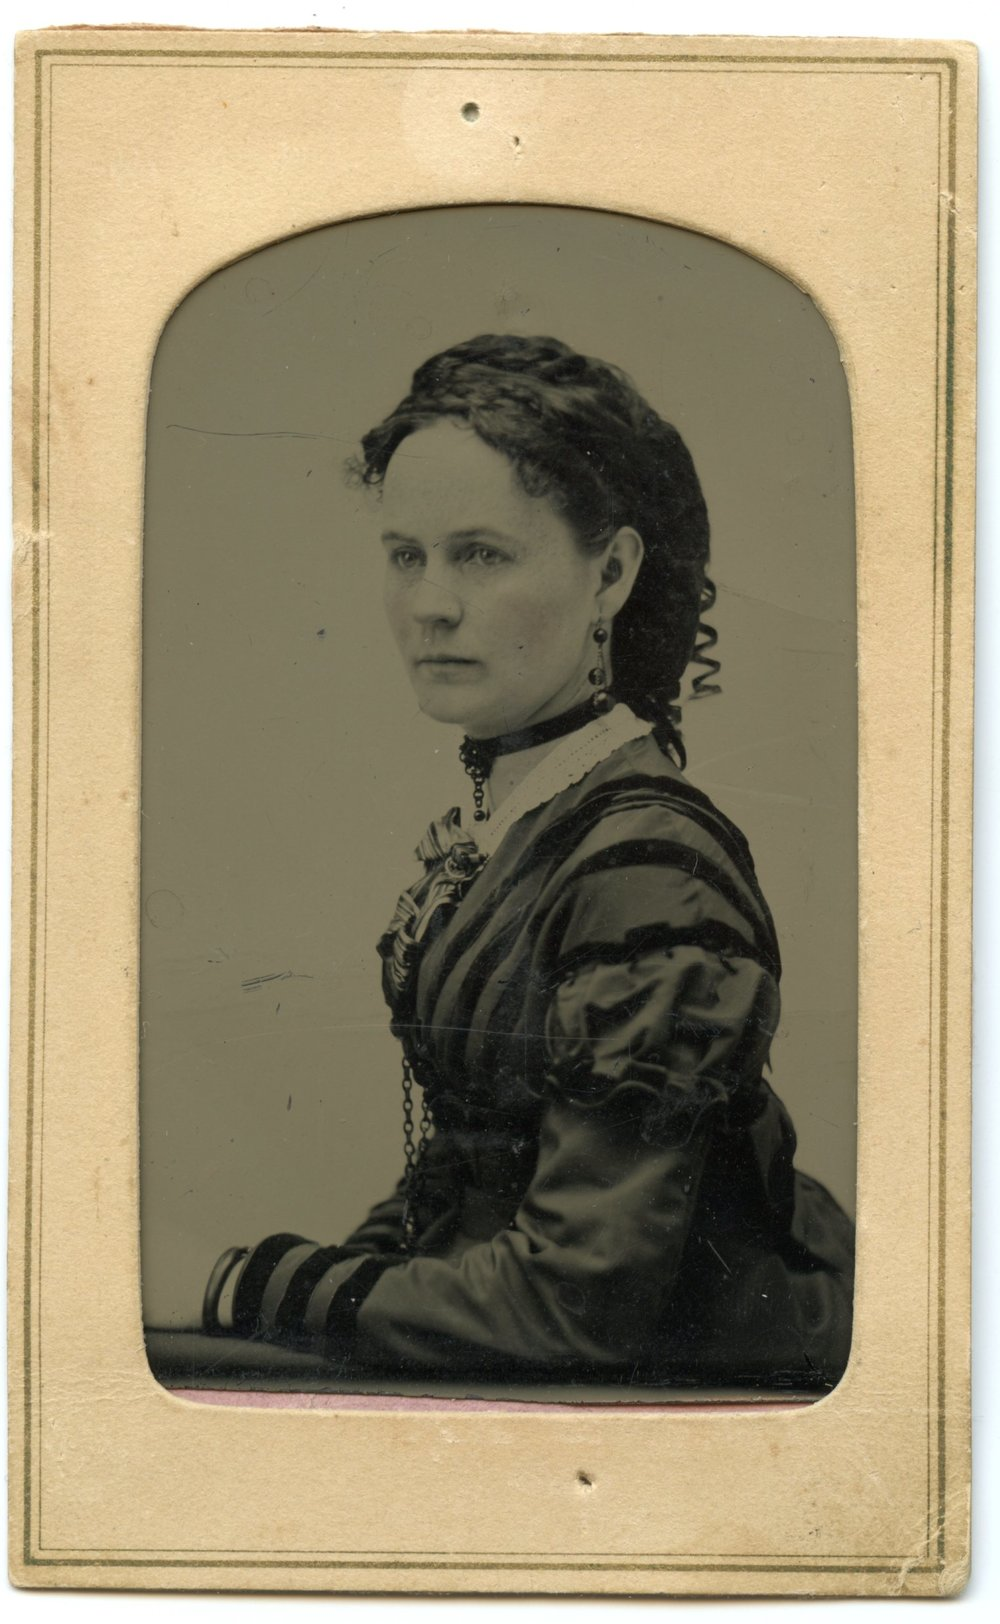 My paternal great-great-grandmother, Elsie Amelia Baker (Martin) circa 1870s